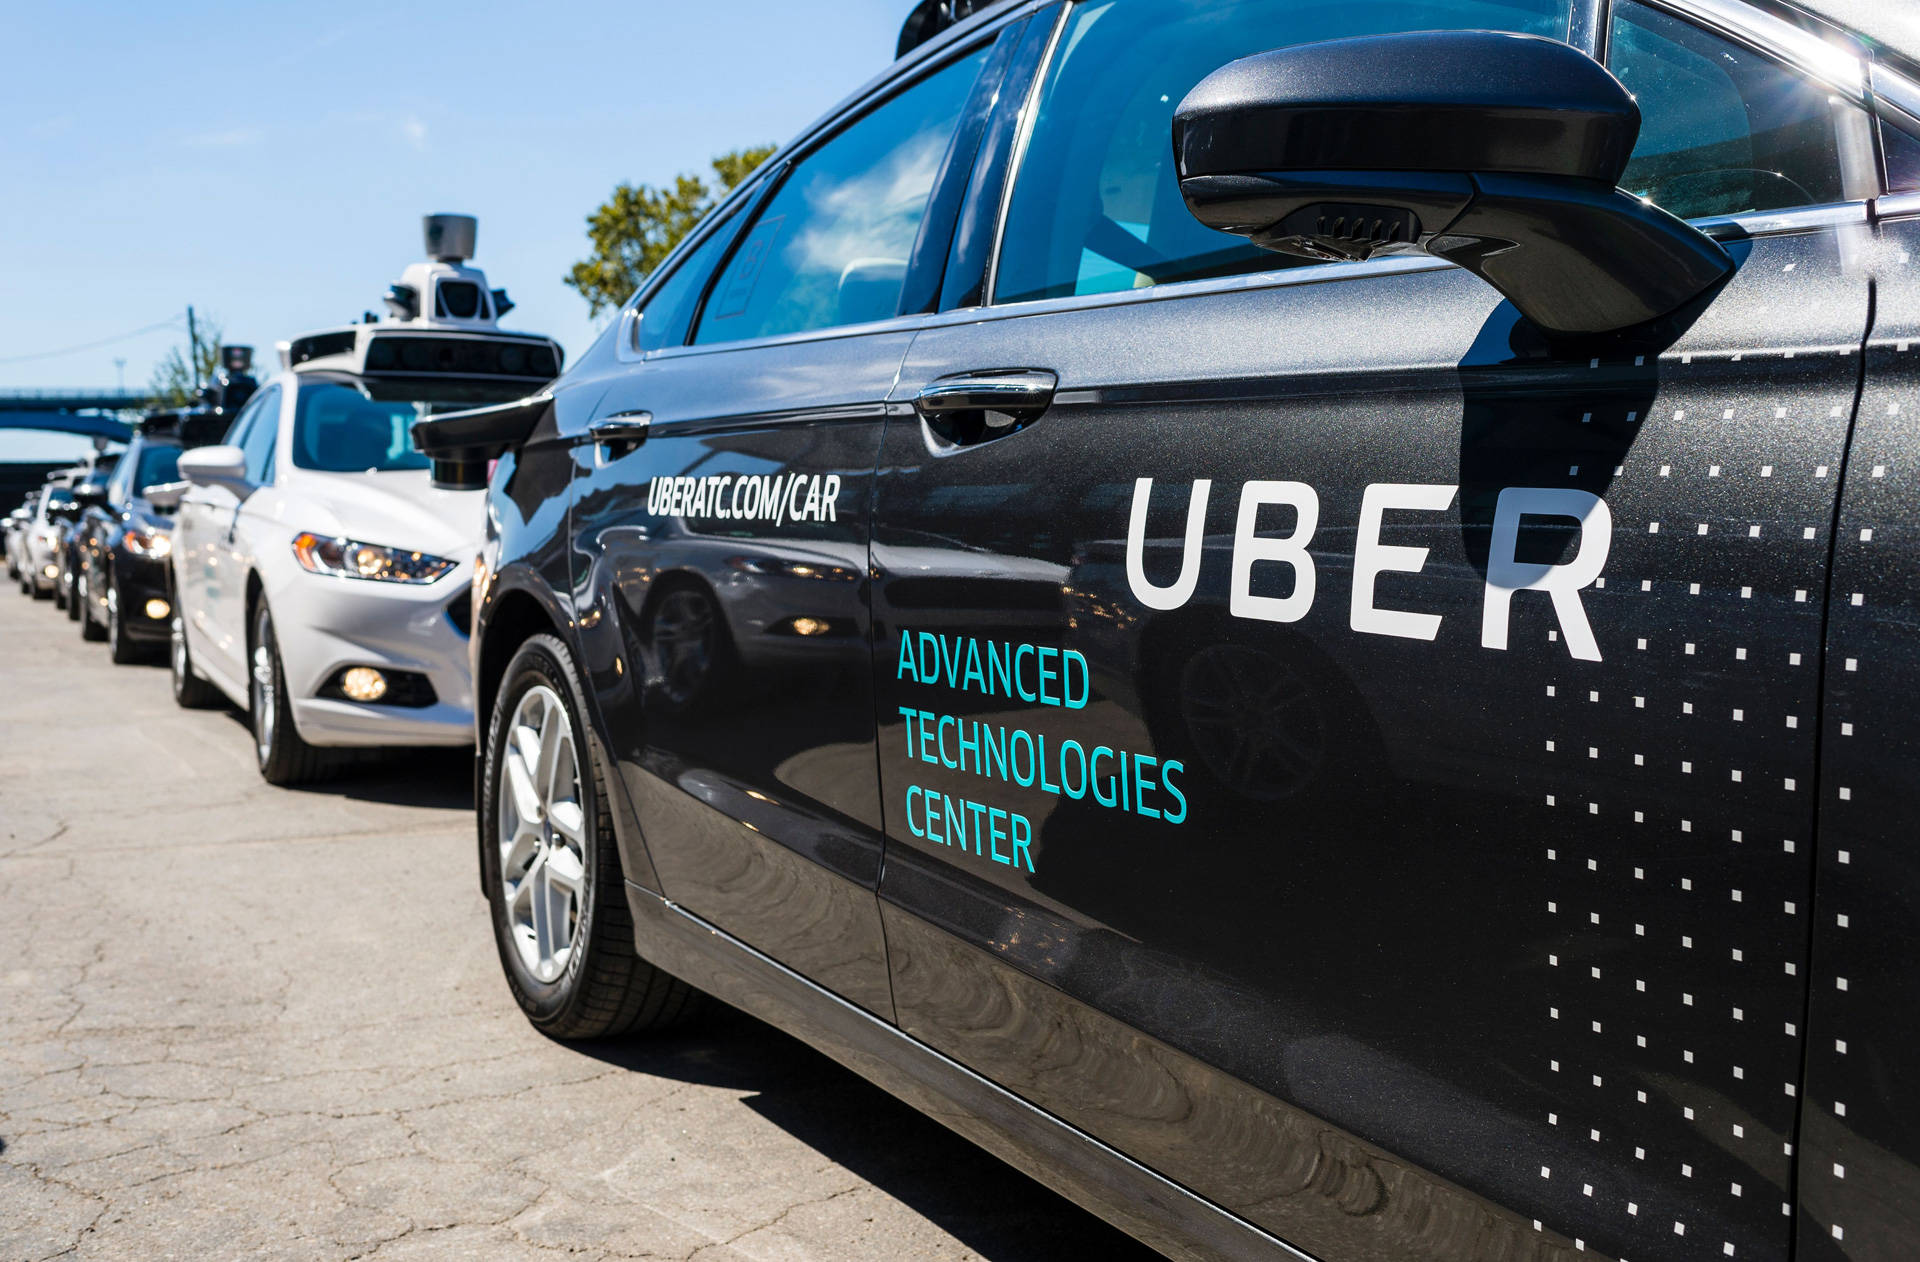 Pilot models of Uber's self-driving car on display in September 2016. ANGELO MERENDINO/AFP/Getty Images